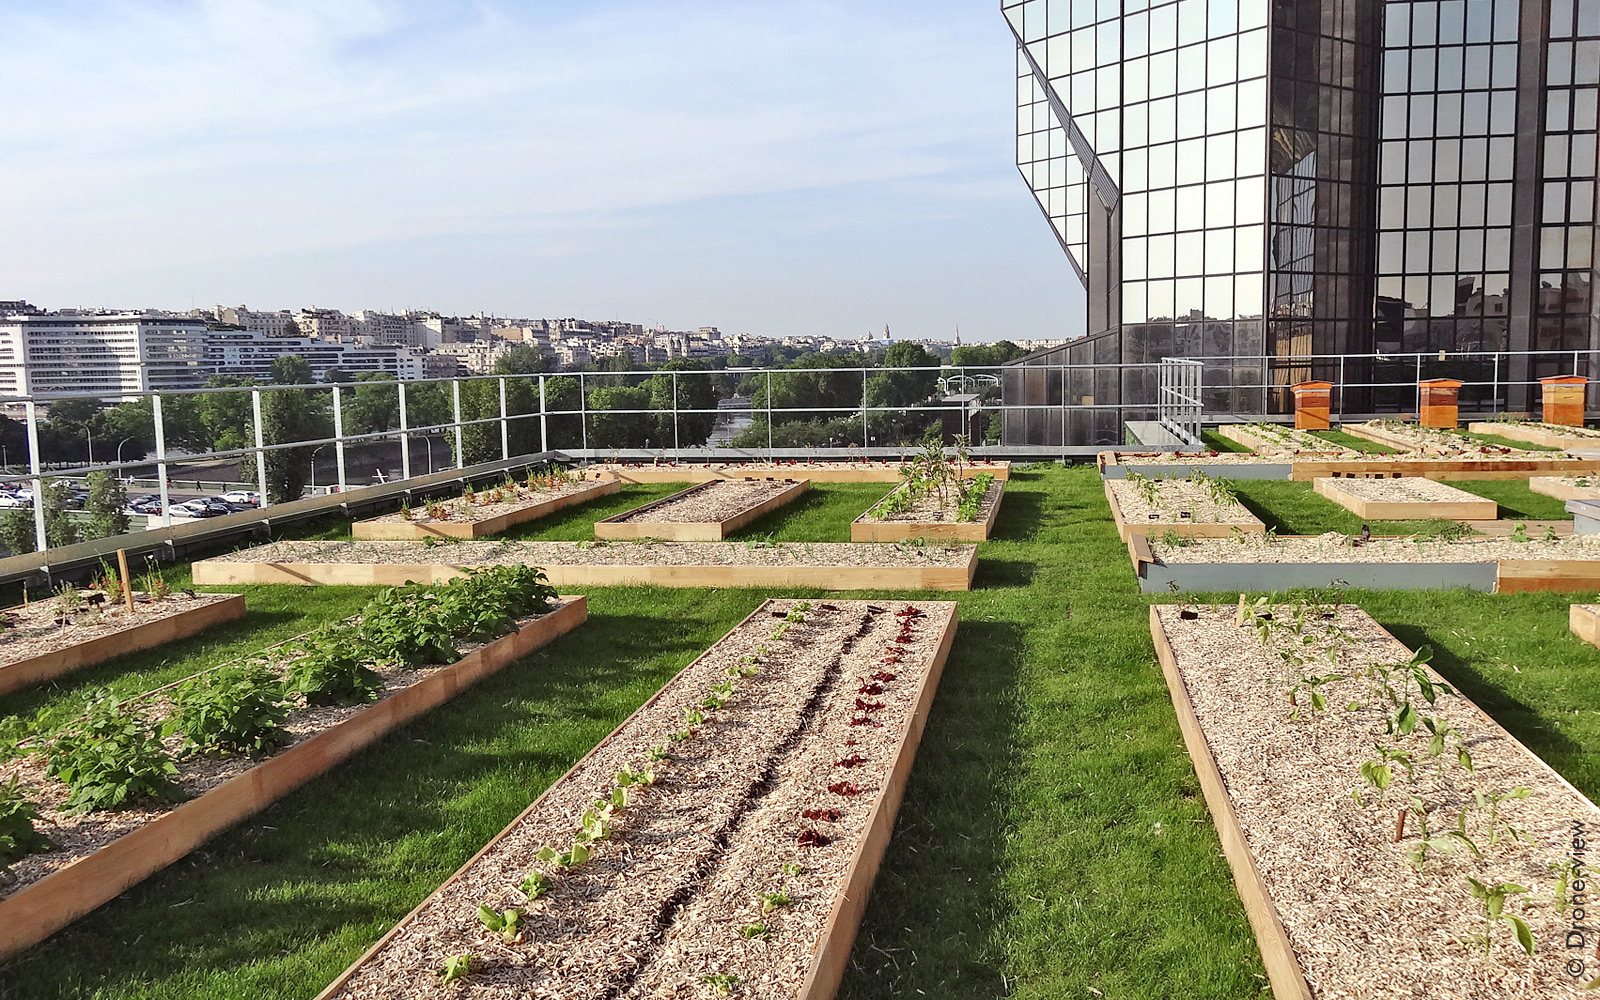 Vegetable planting beds and beehives on a roof in the city